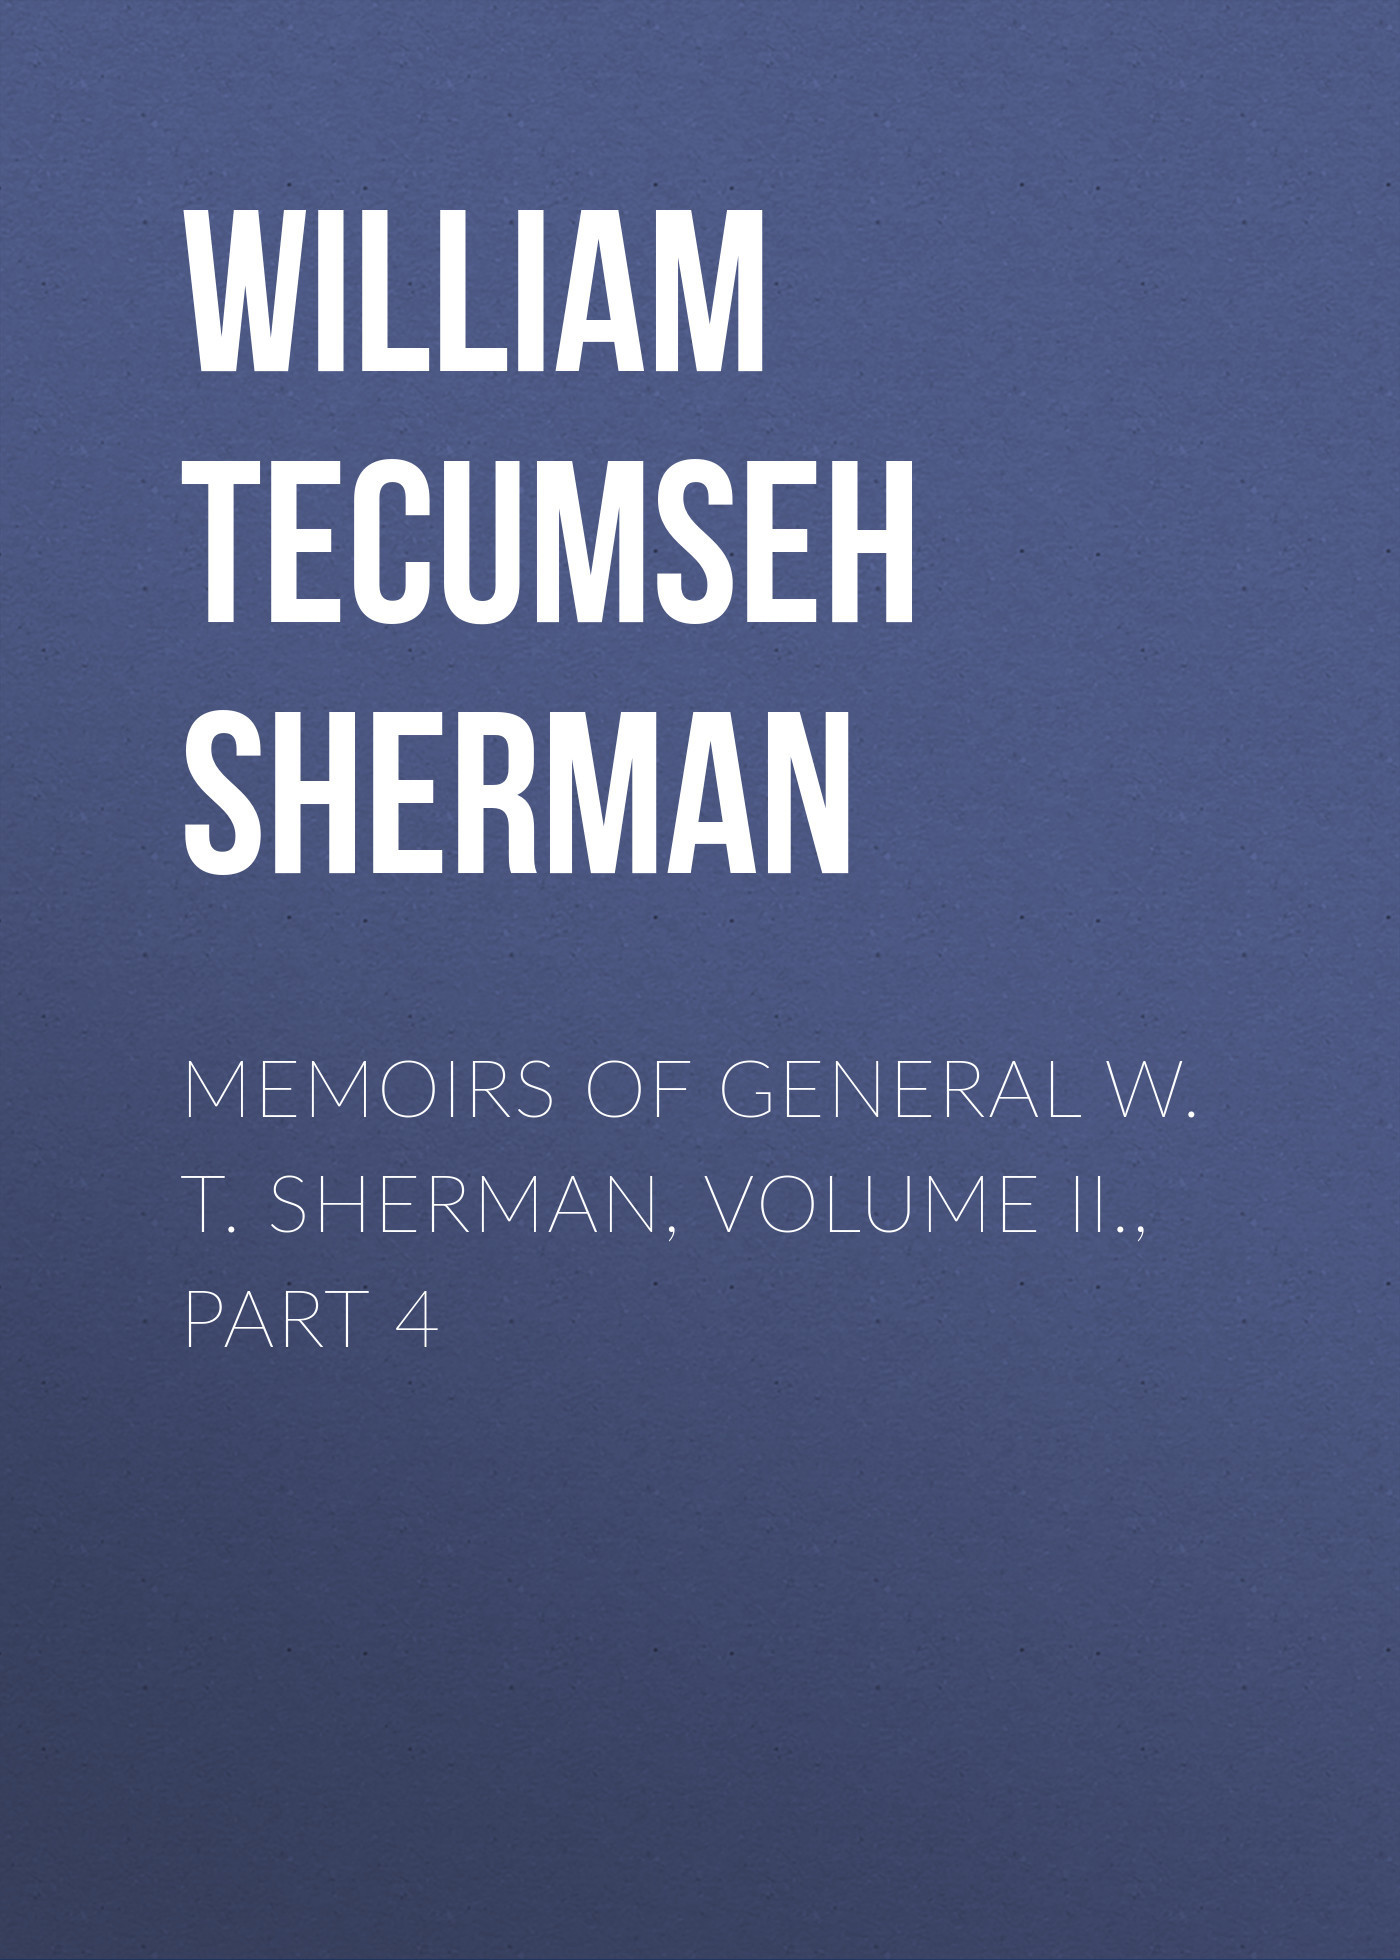 William Tecumseh Sherman Memoirs of General W. T. Sherman, Volume II., Part 4 out of print italeri 1 35 m4a1 sherman 225